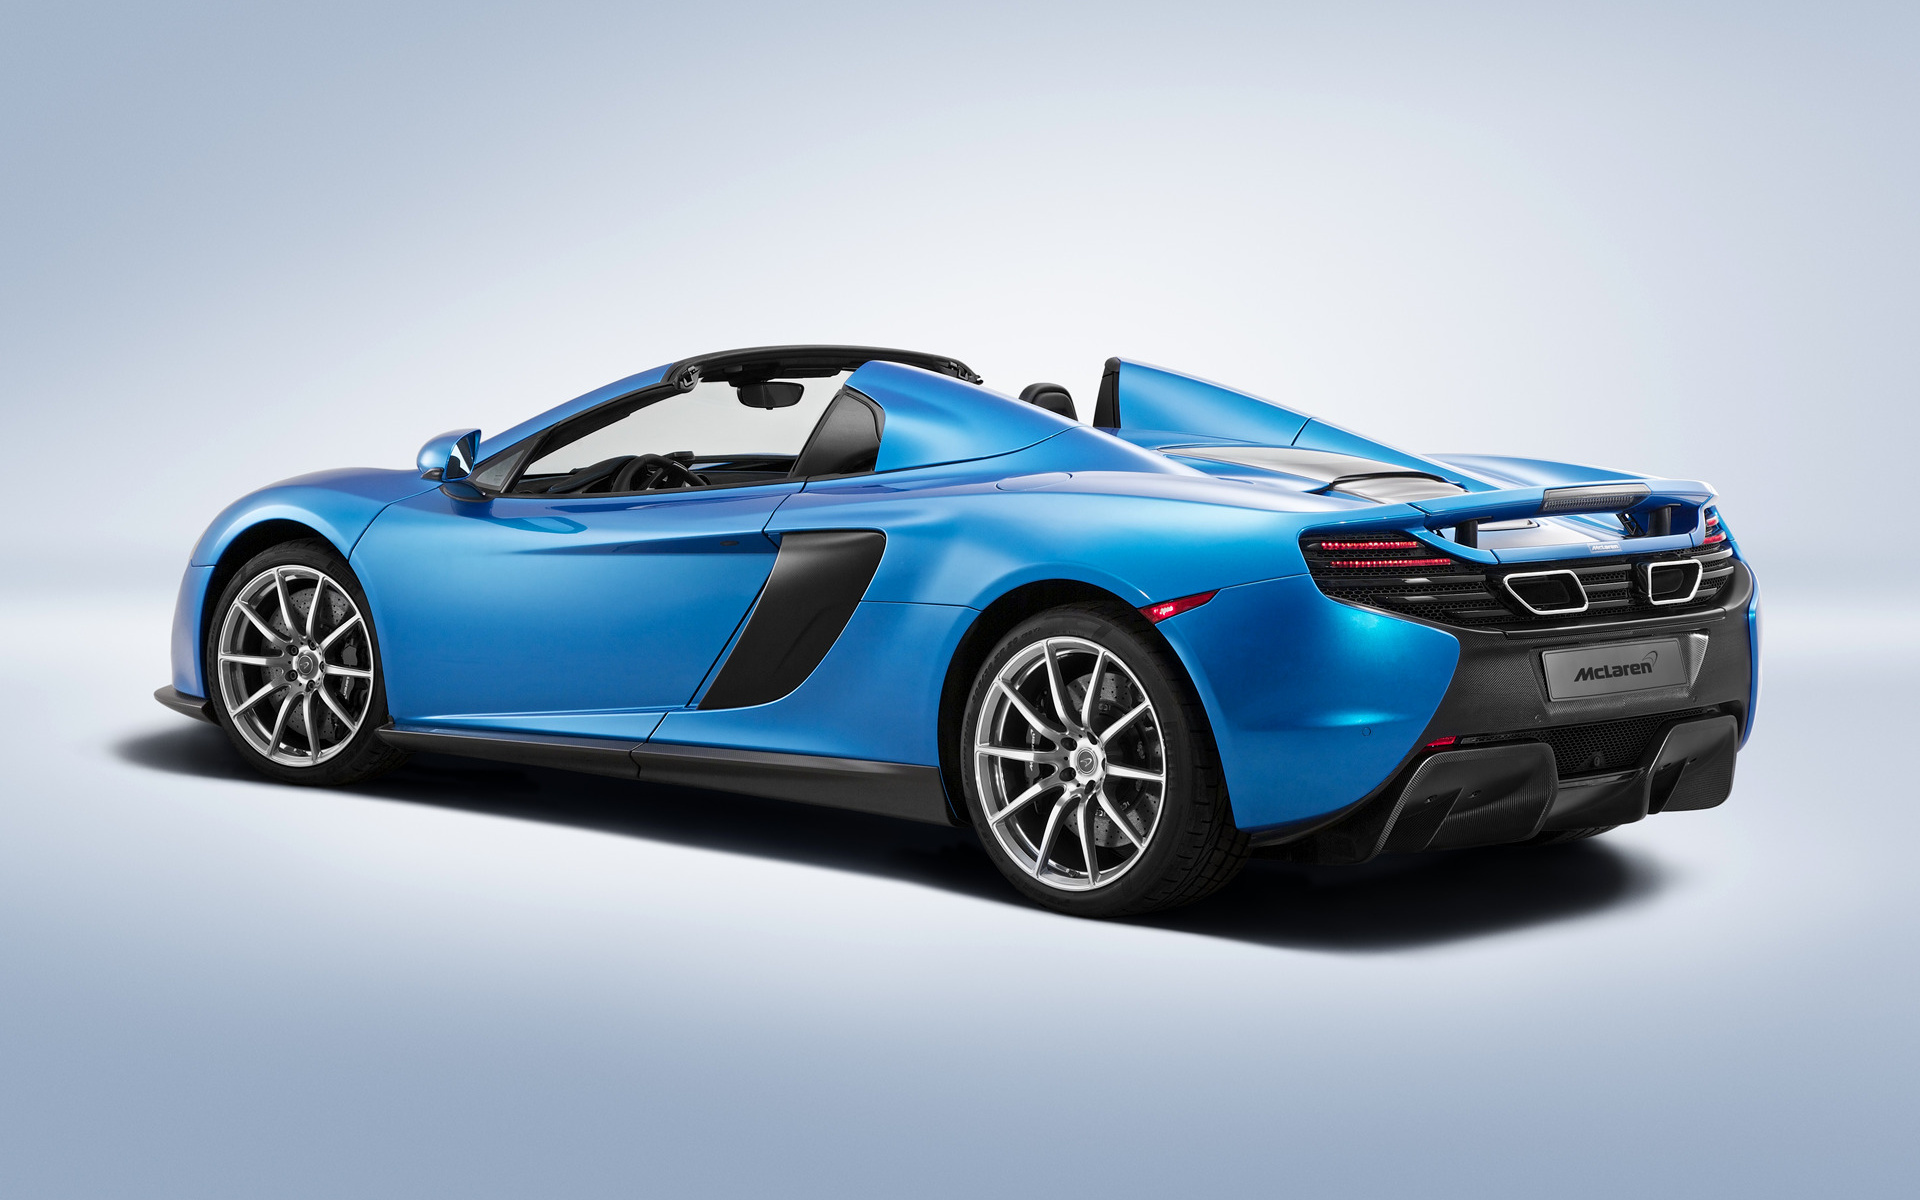 https://www.carpixel.net/w/3fe7f094978316cc0e9e145e4d3081f6/mclaren-650s-spider-by-mso-car-wallpaper-11263.jpg